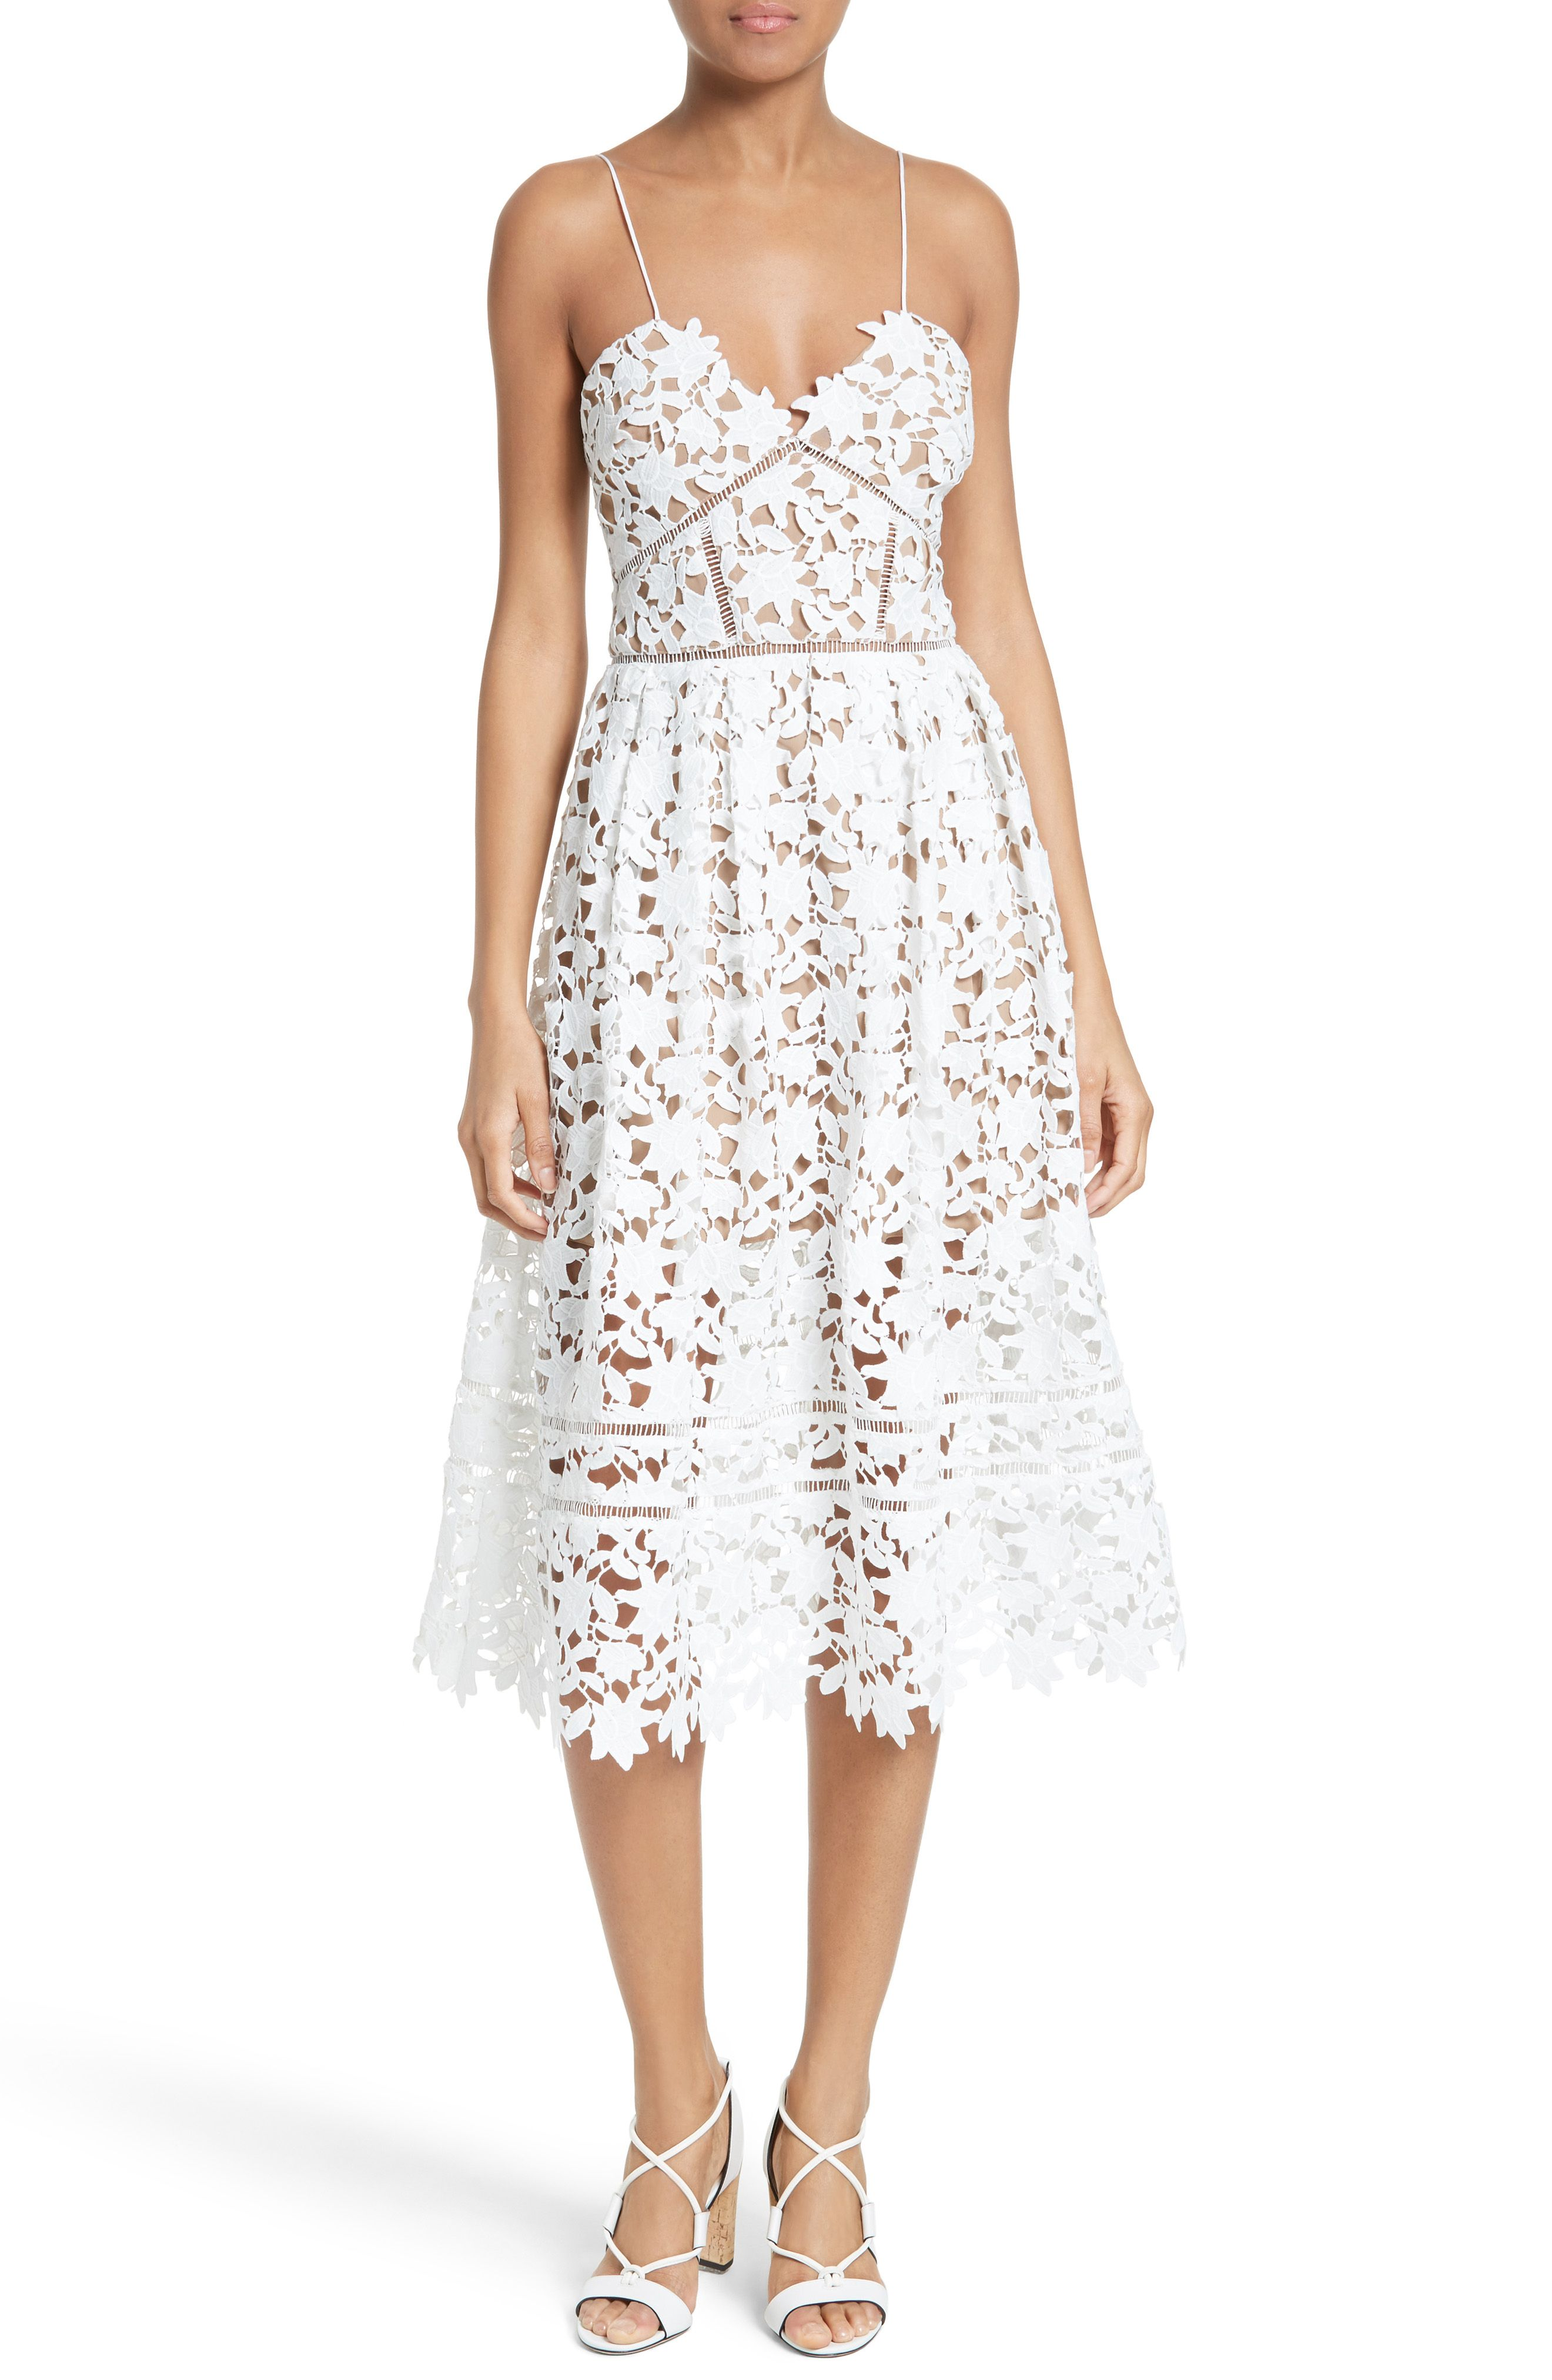 Best dress for wedding guest   Best White Lace Dresses from Nordstrom  Pinterest  White lace